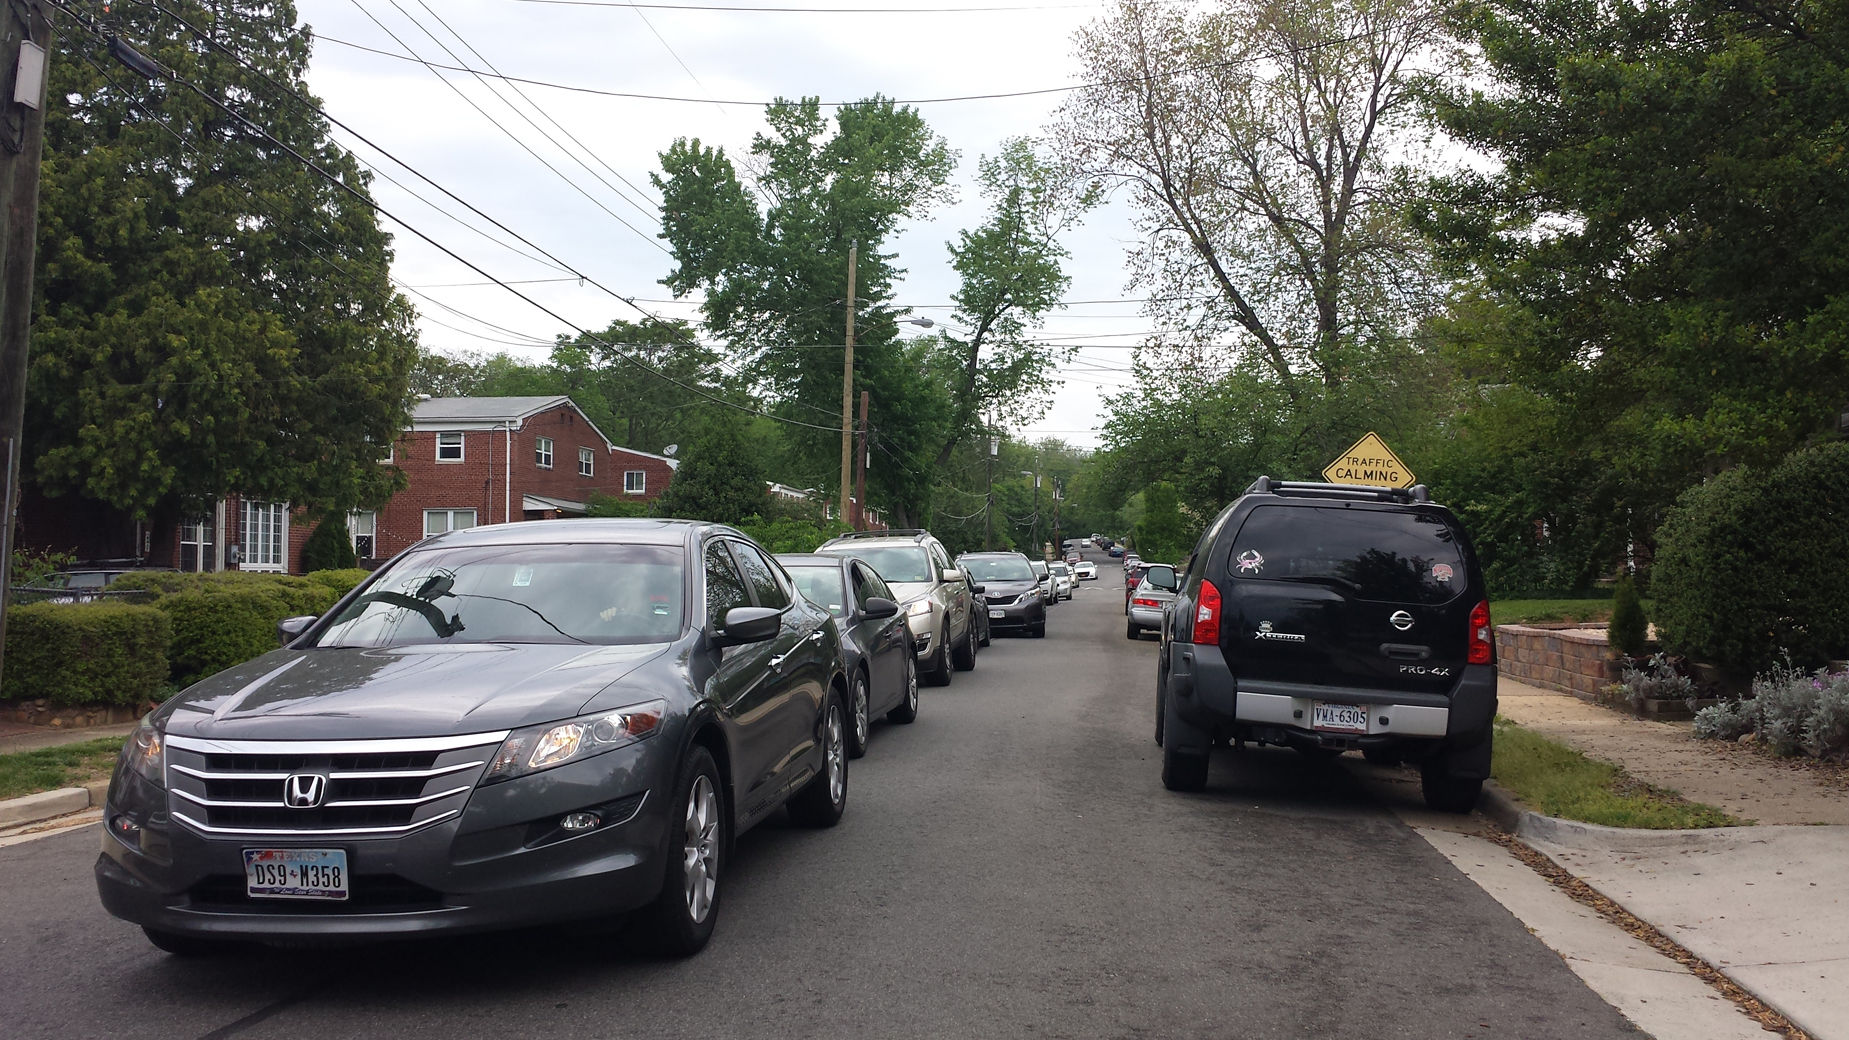 Drivers cutting through this Alexandria street with approximately 80 homes often wait long periods of time to turn onto a Duke Street service road. Apps direct them to the street, even though it is often faster to take a parallel street that has two traffic lights. (WTOP/Colleen Kelleher)